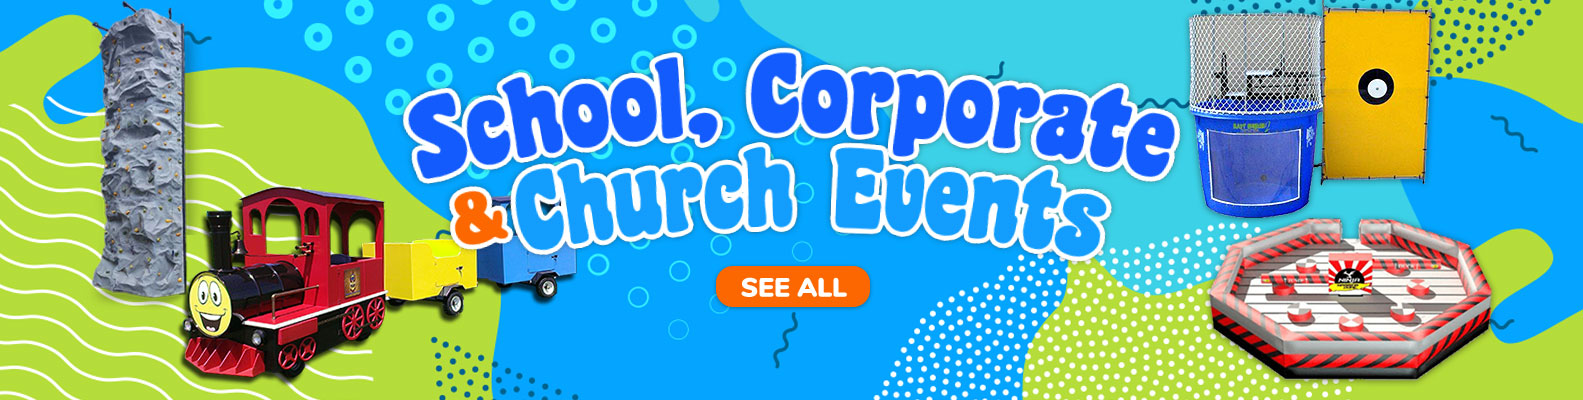 School, Church, and Corporate Eventso